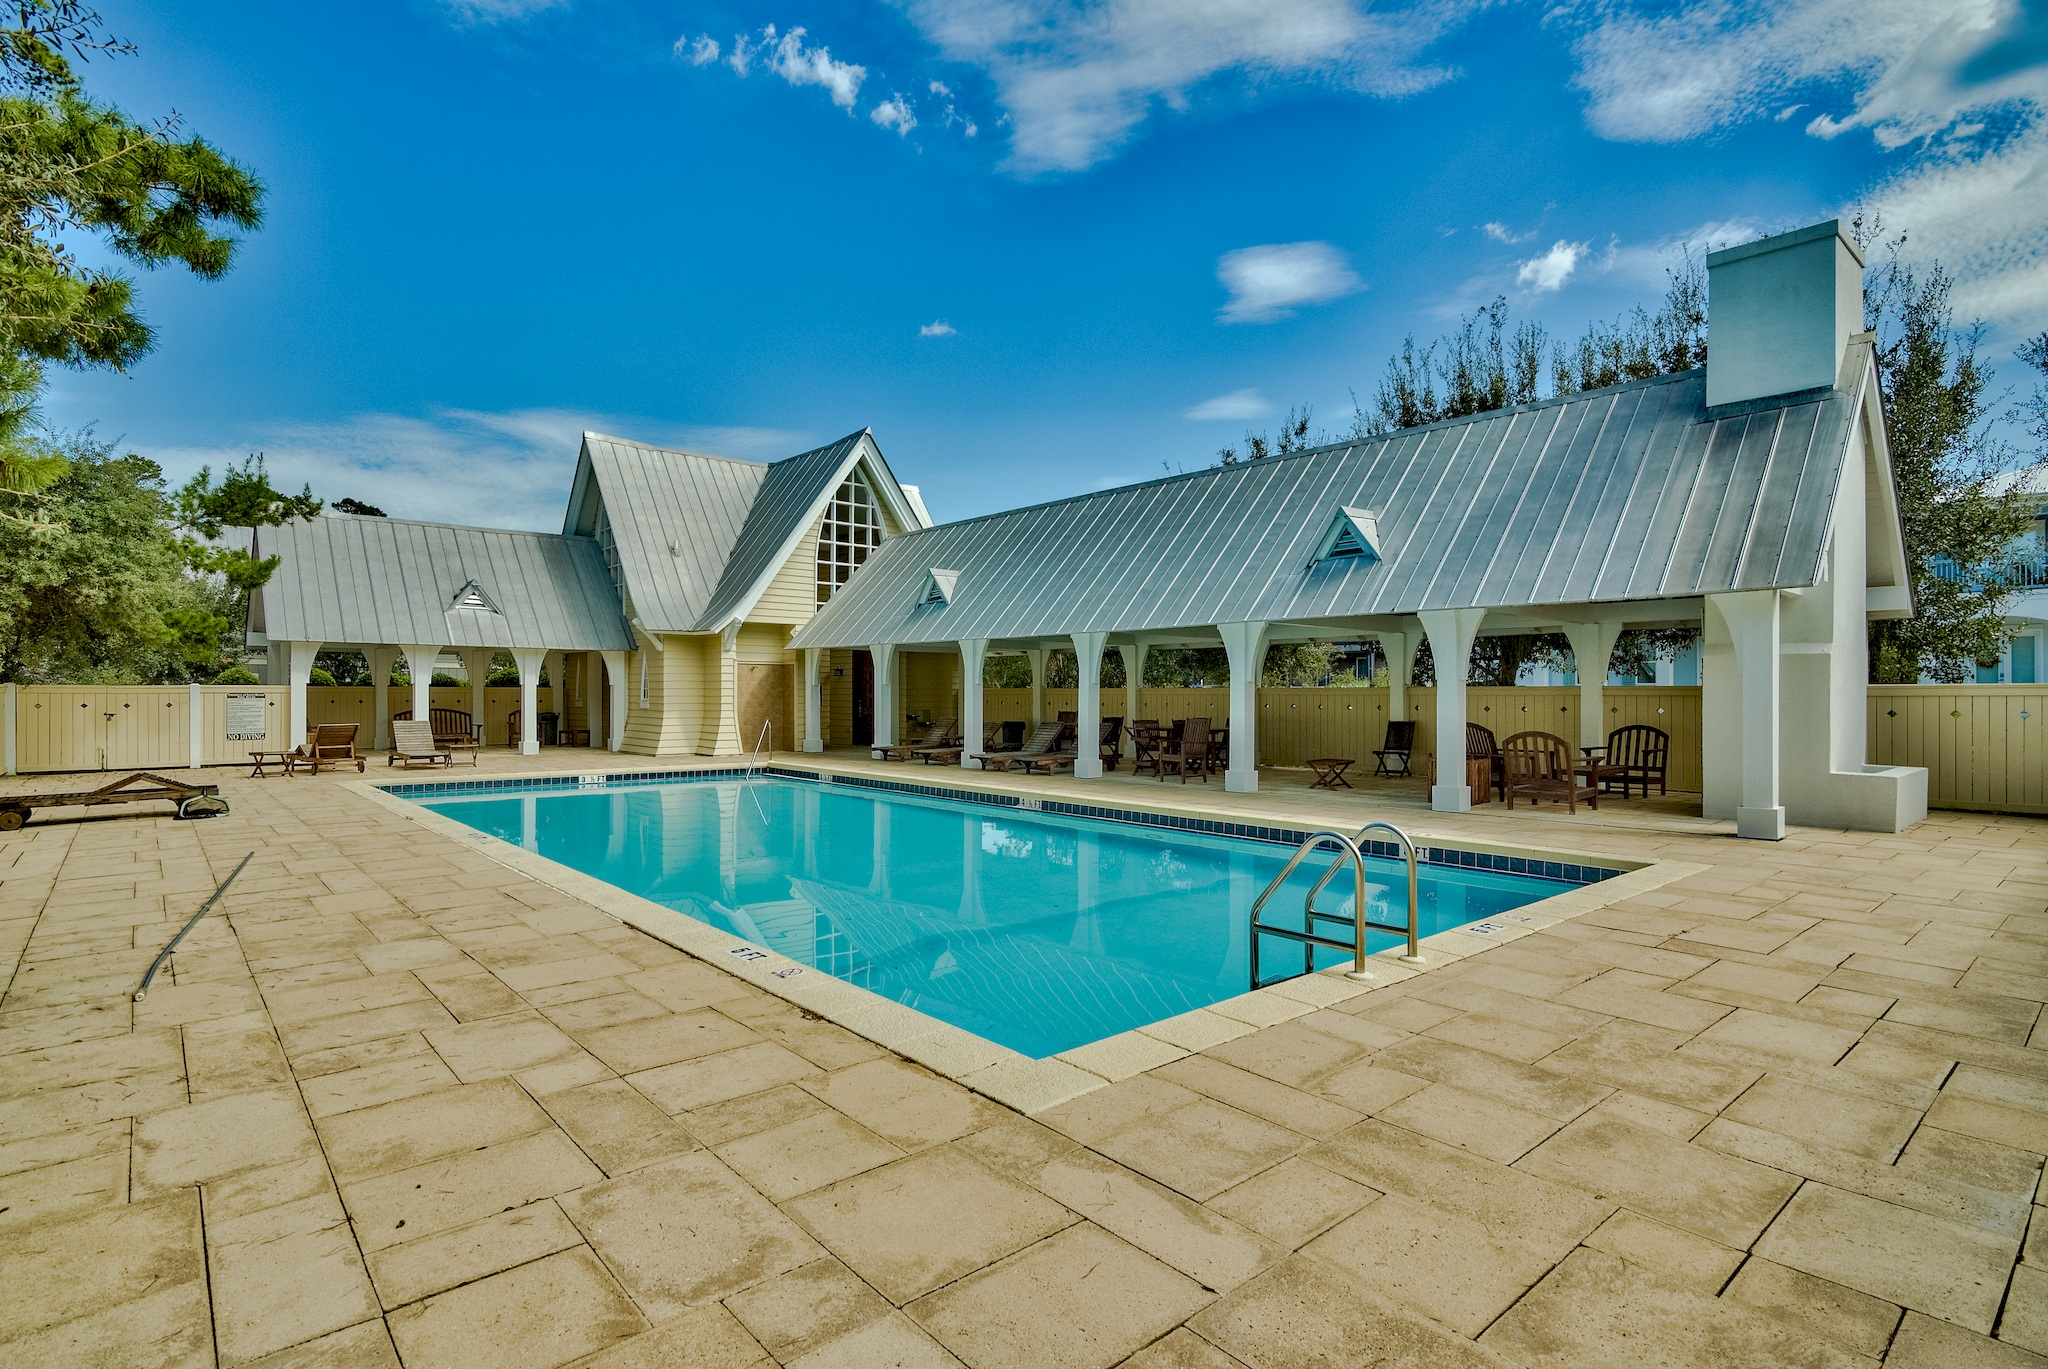 Pool and clubhouse which is one of the great amenities for The Preserve at Inlet Beach